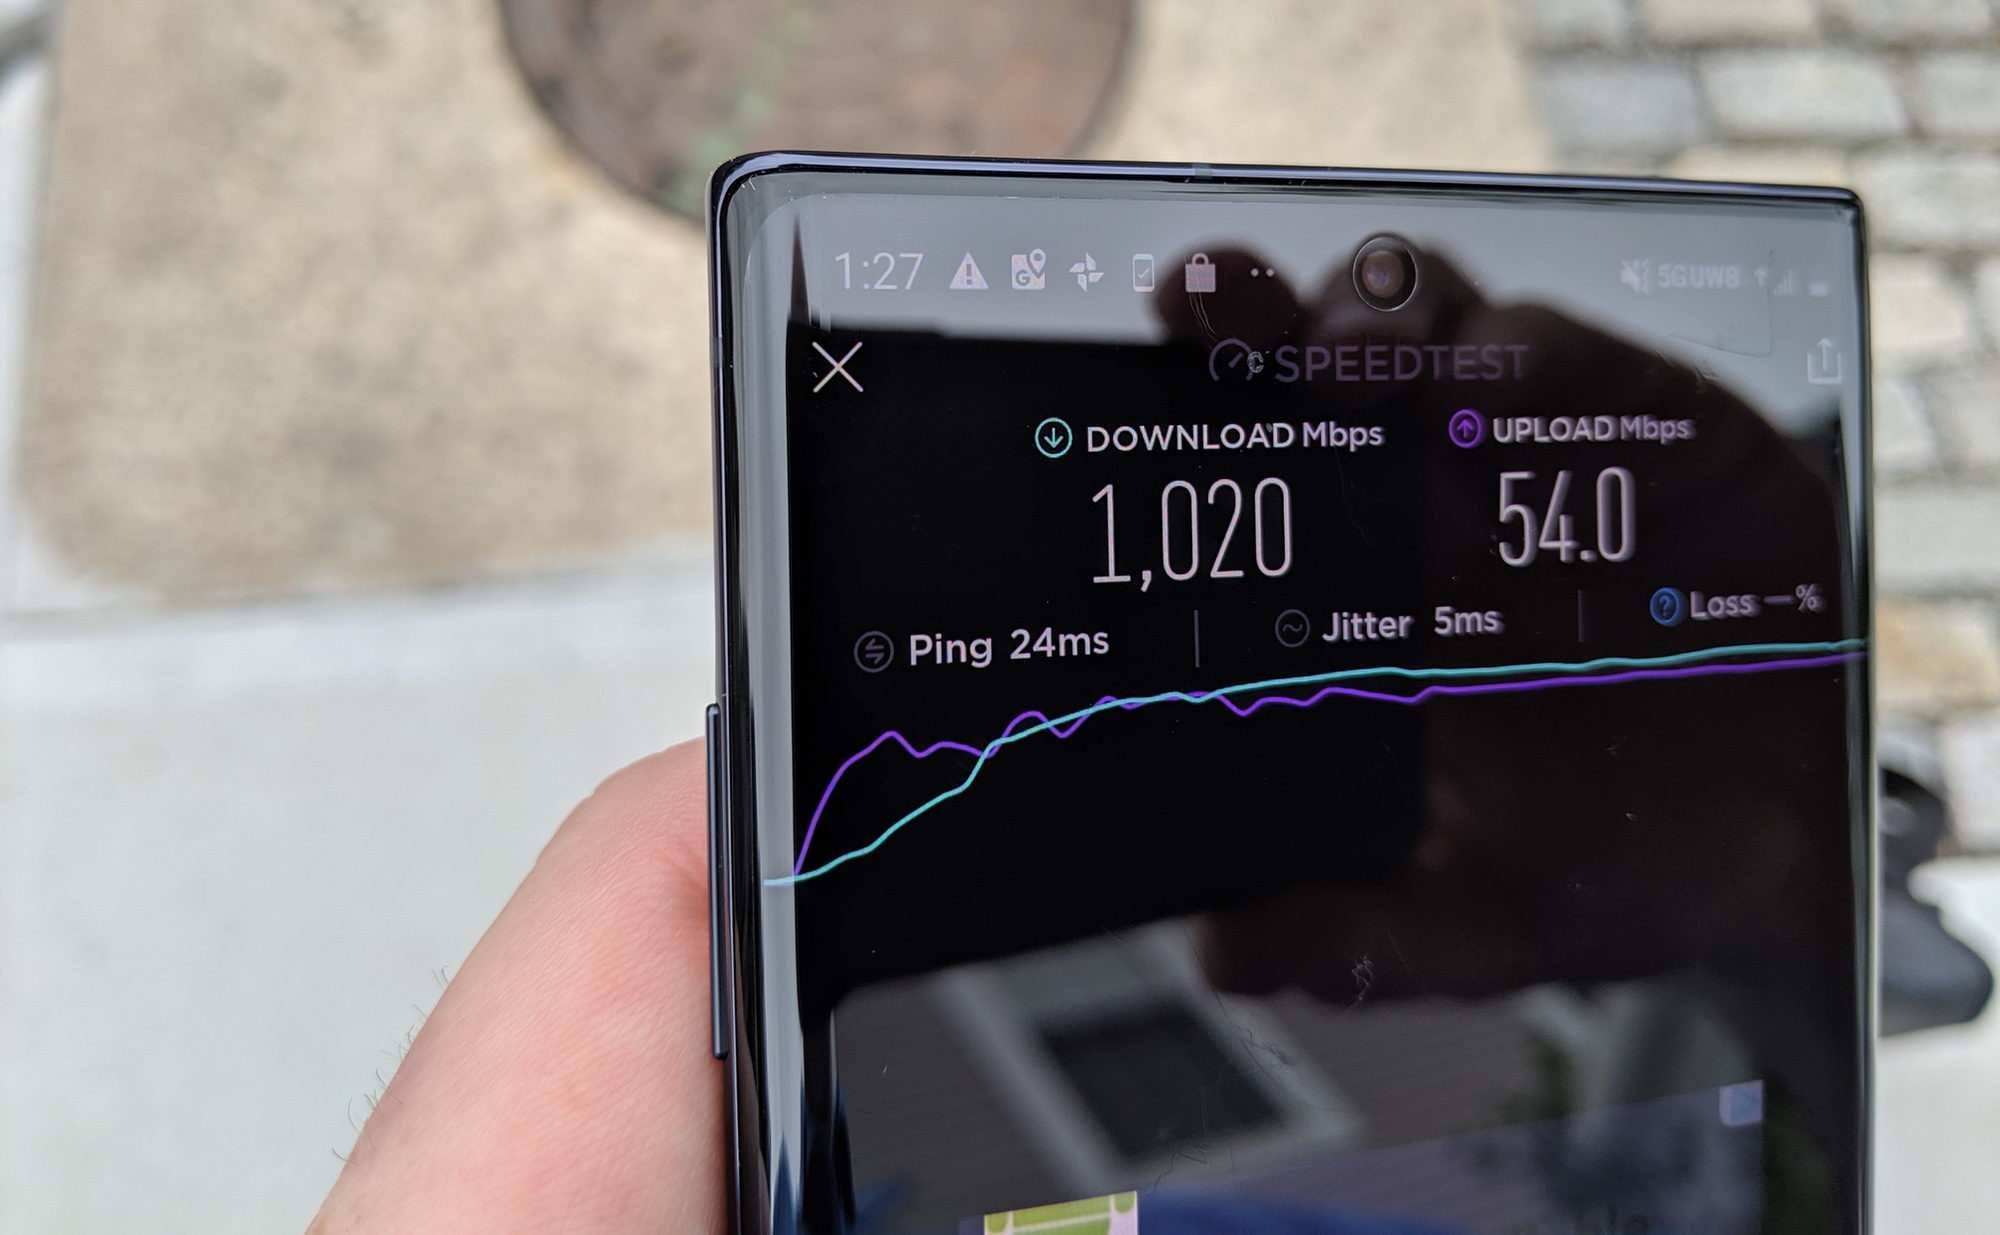 Galaxy Note 10 Plus 5g Tested 1 Gbps Speeds When You Can Connect Tom S Guide